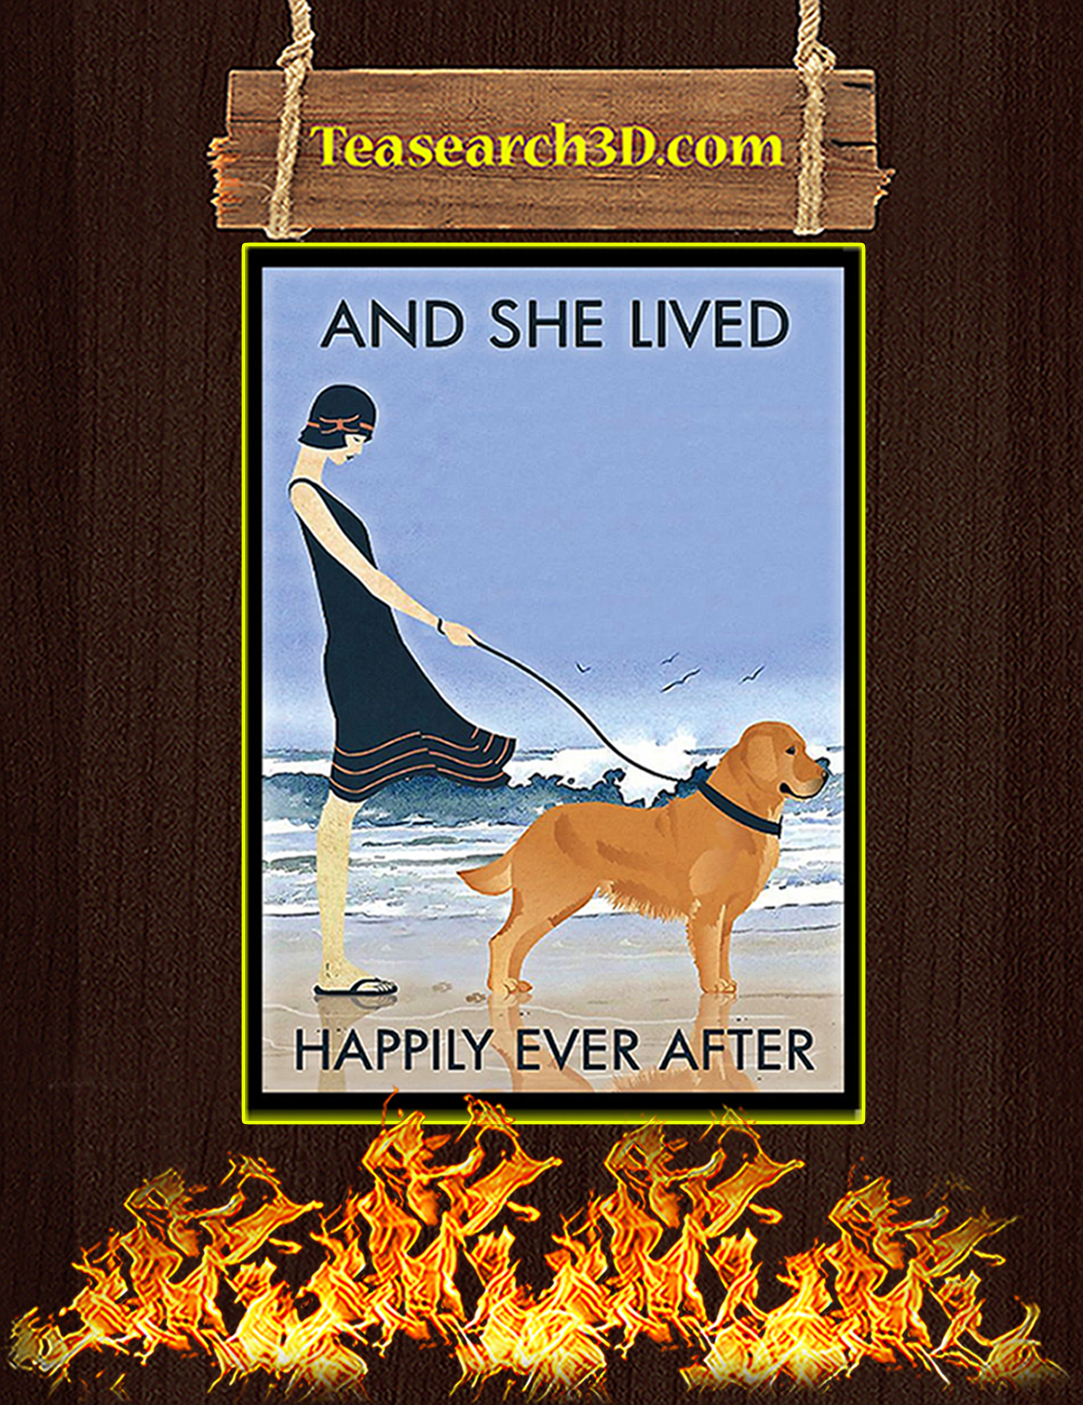 Golden Retriever And she lived happily ever after poster A2